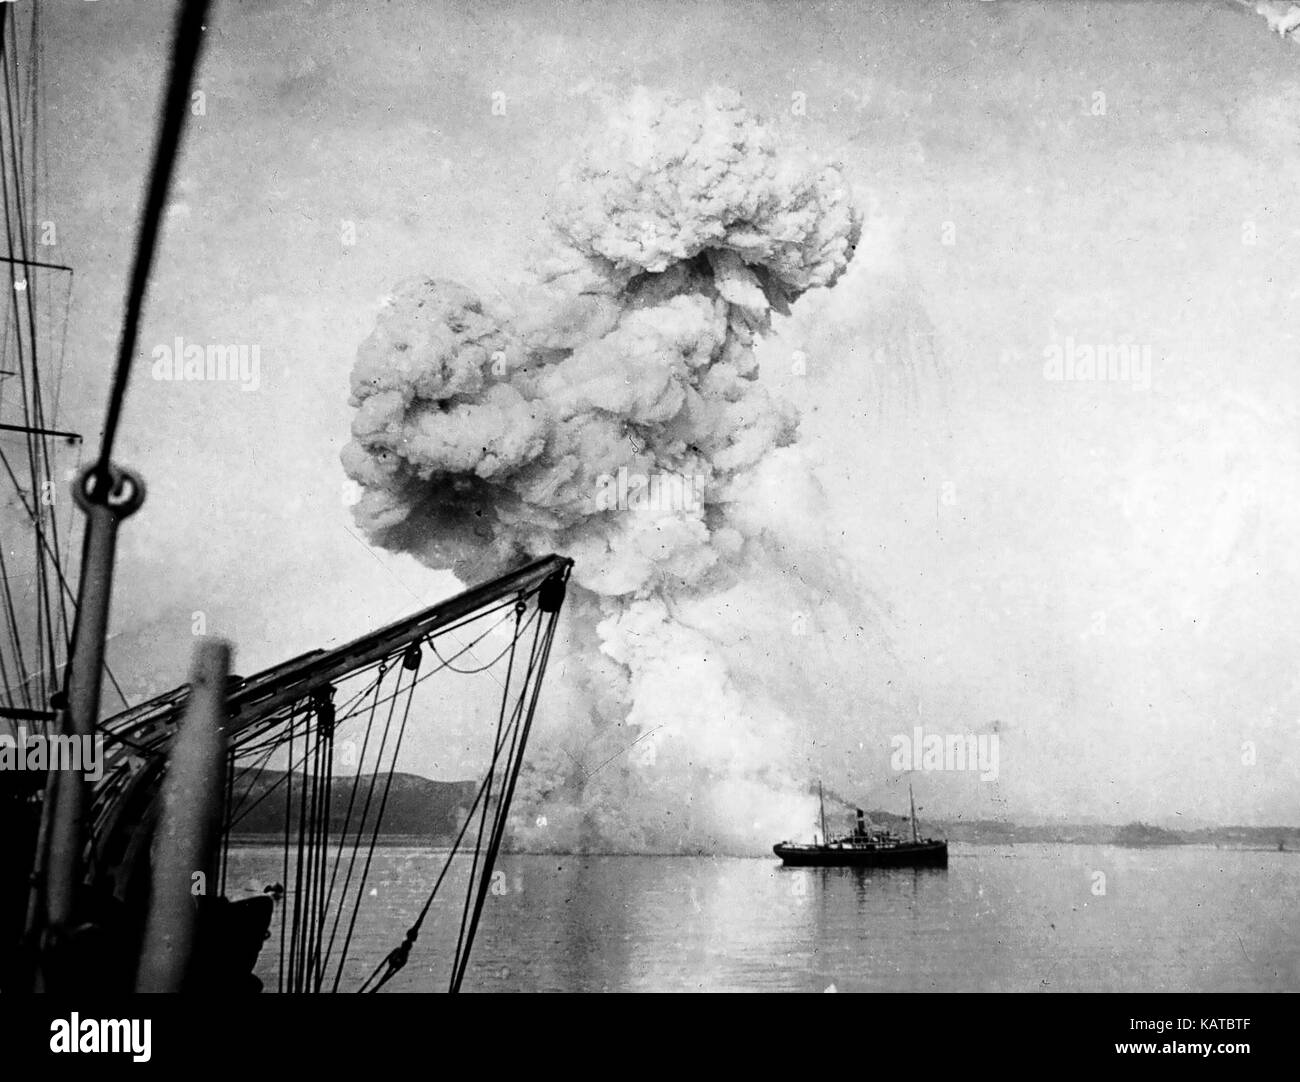 BATTLE OF CHEMULPO BAY 9 February 1904. The Russian gunboat Korietz explodes after it's crew scuttled the ship - Stock Image